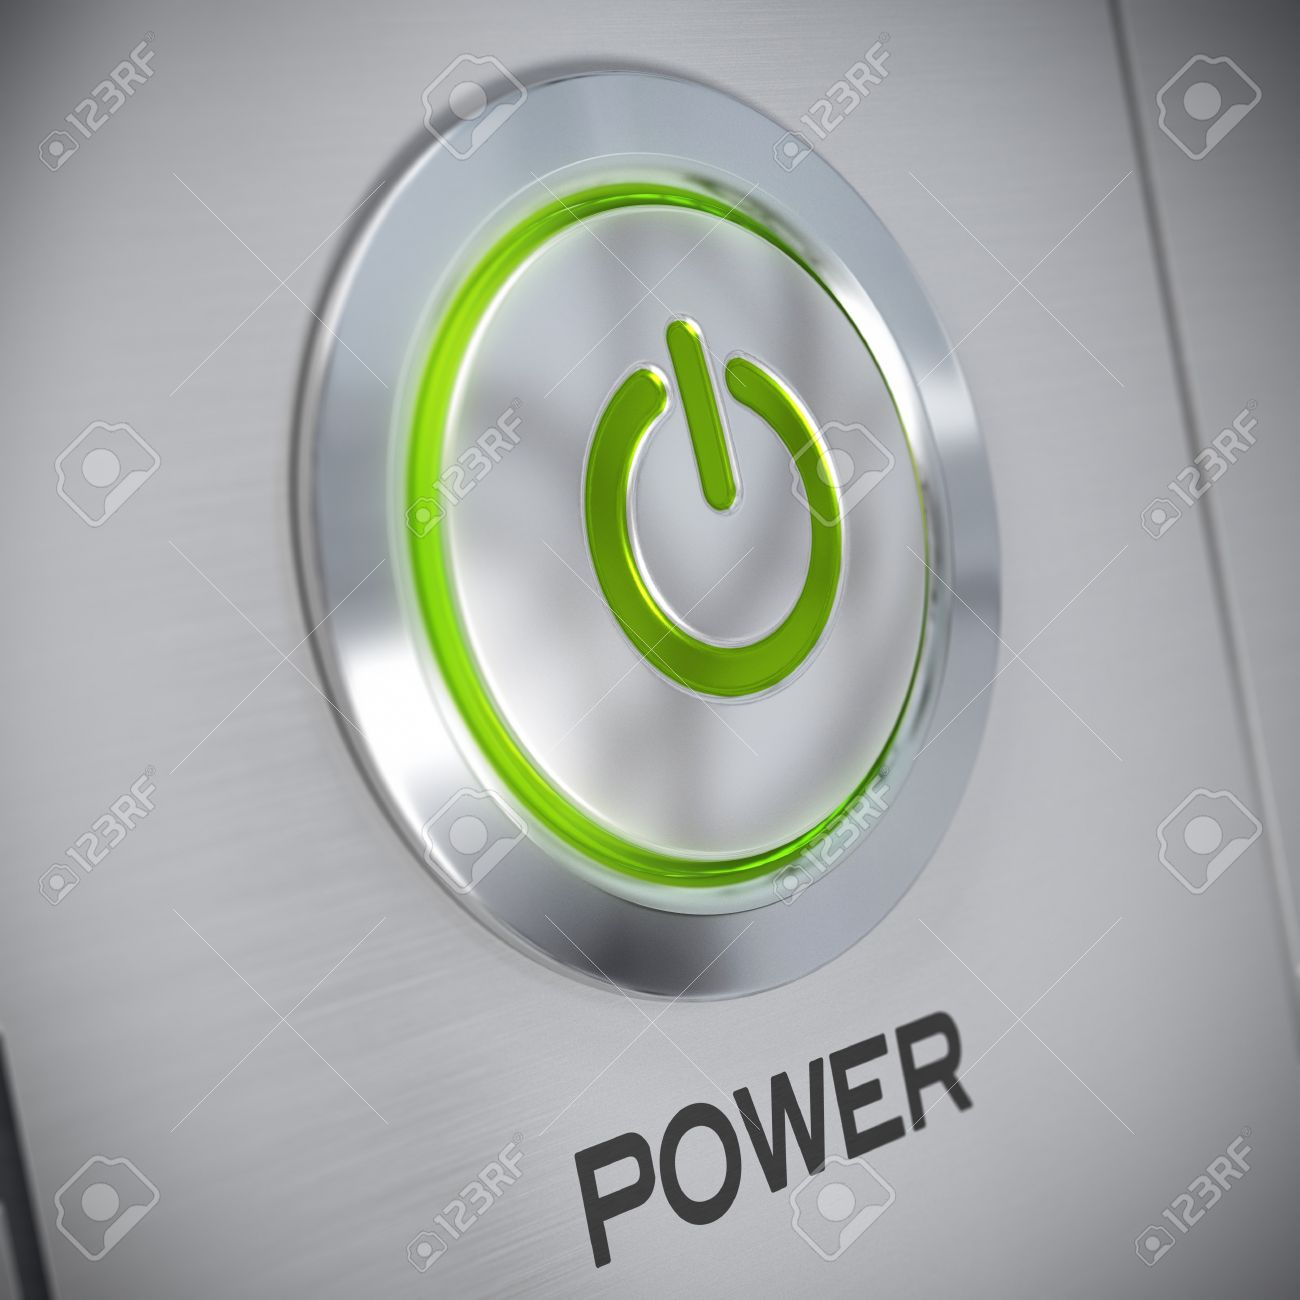 Power button on a brushed aluminum panel with a green light and power button on a brushed aluminum panel with a green light and the symbol of energy biocorpaavc Gallery